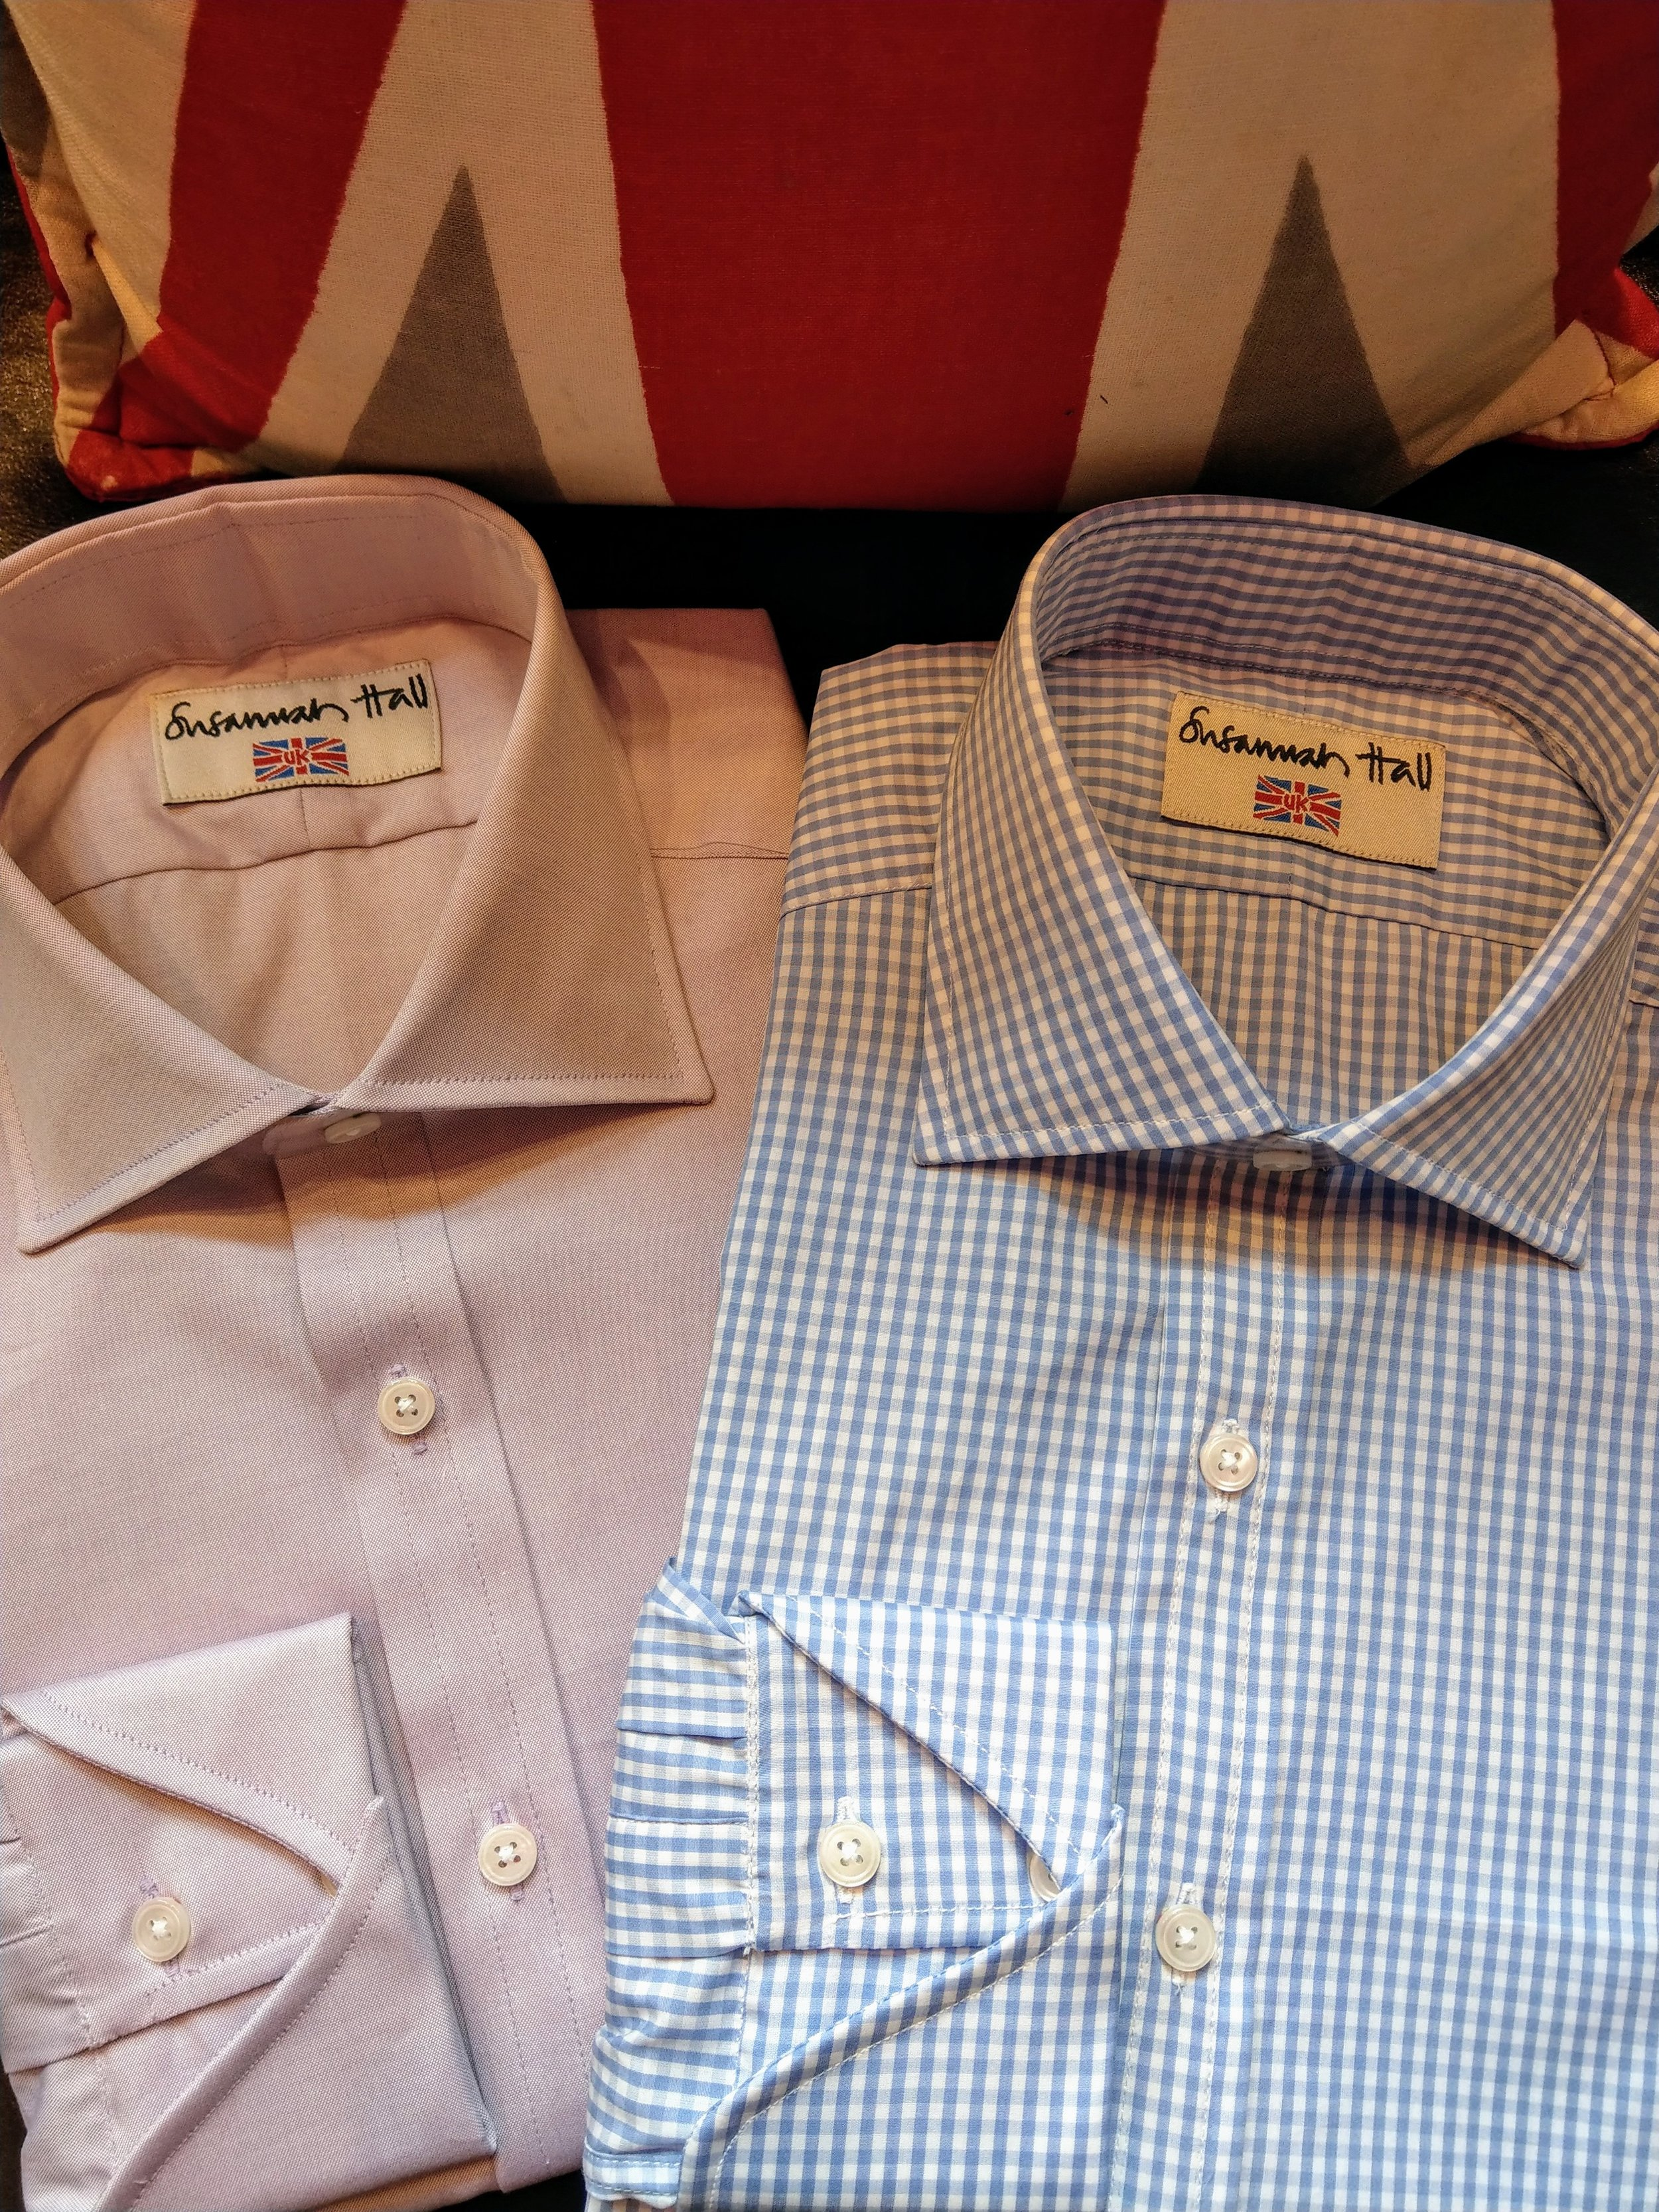 susannah-hall-bespoke-shirt-shirts-uk-british-made-gingham-design.jpg